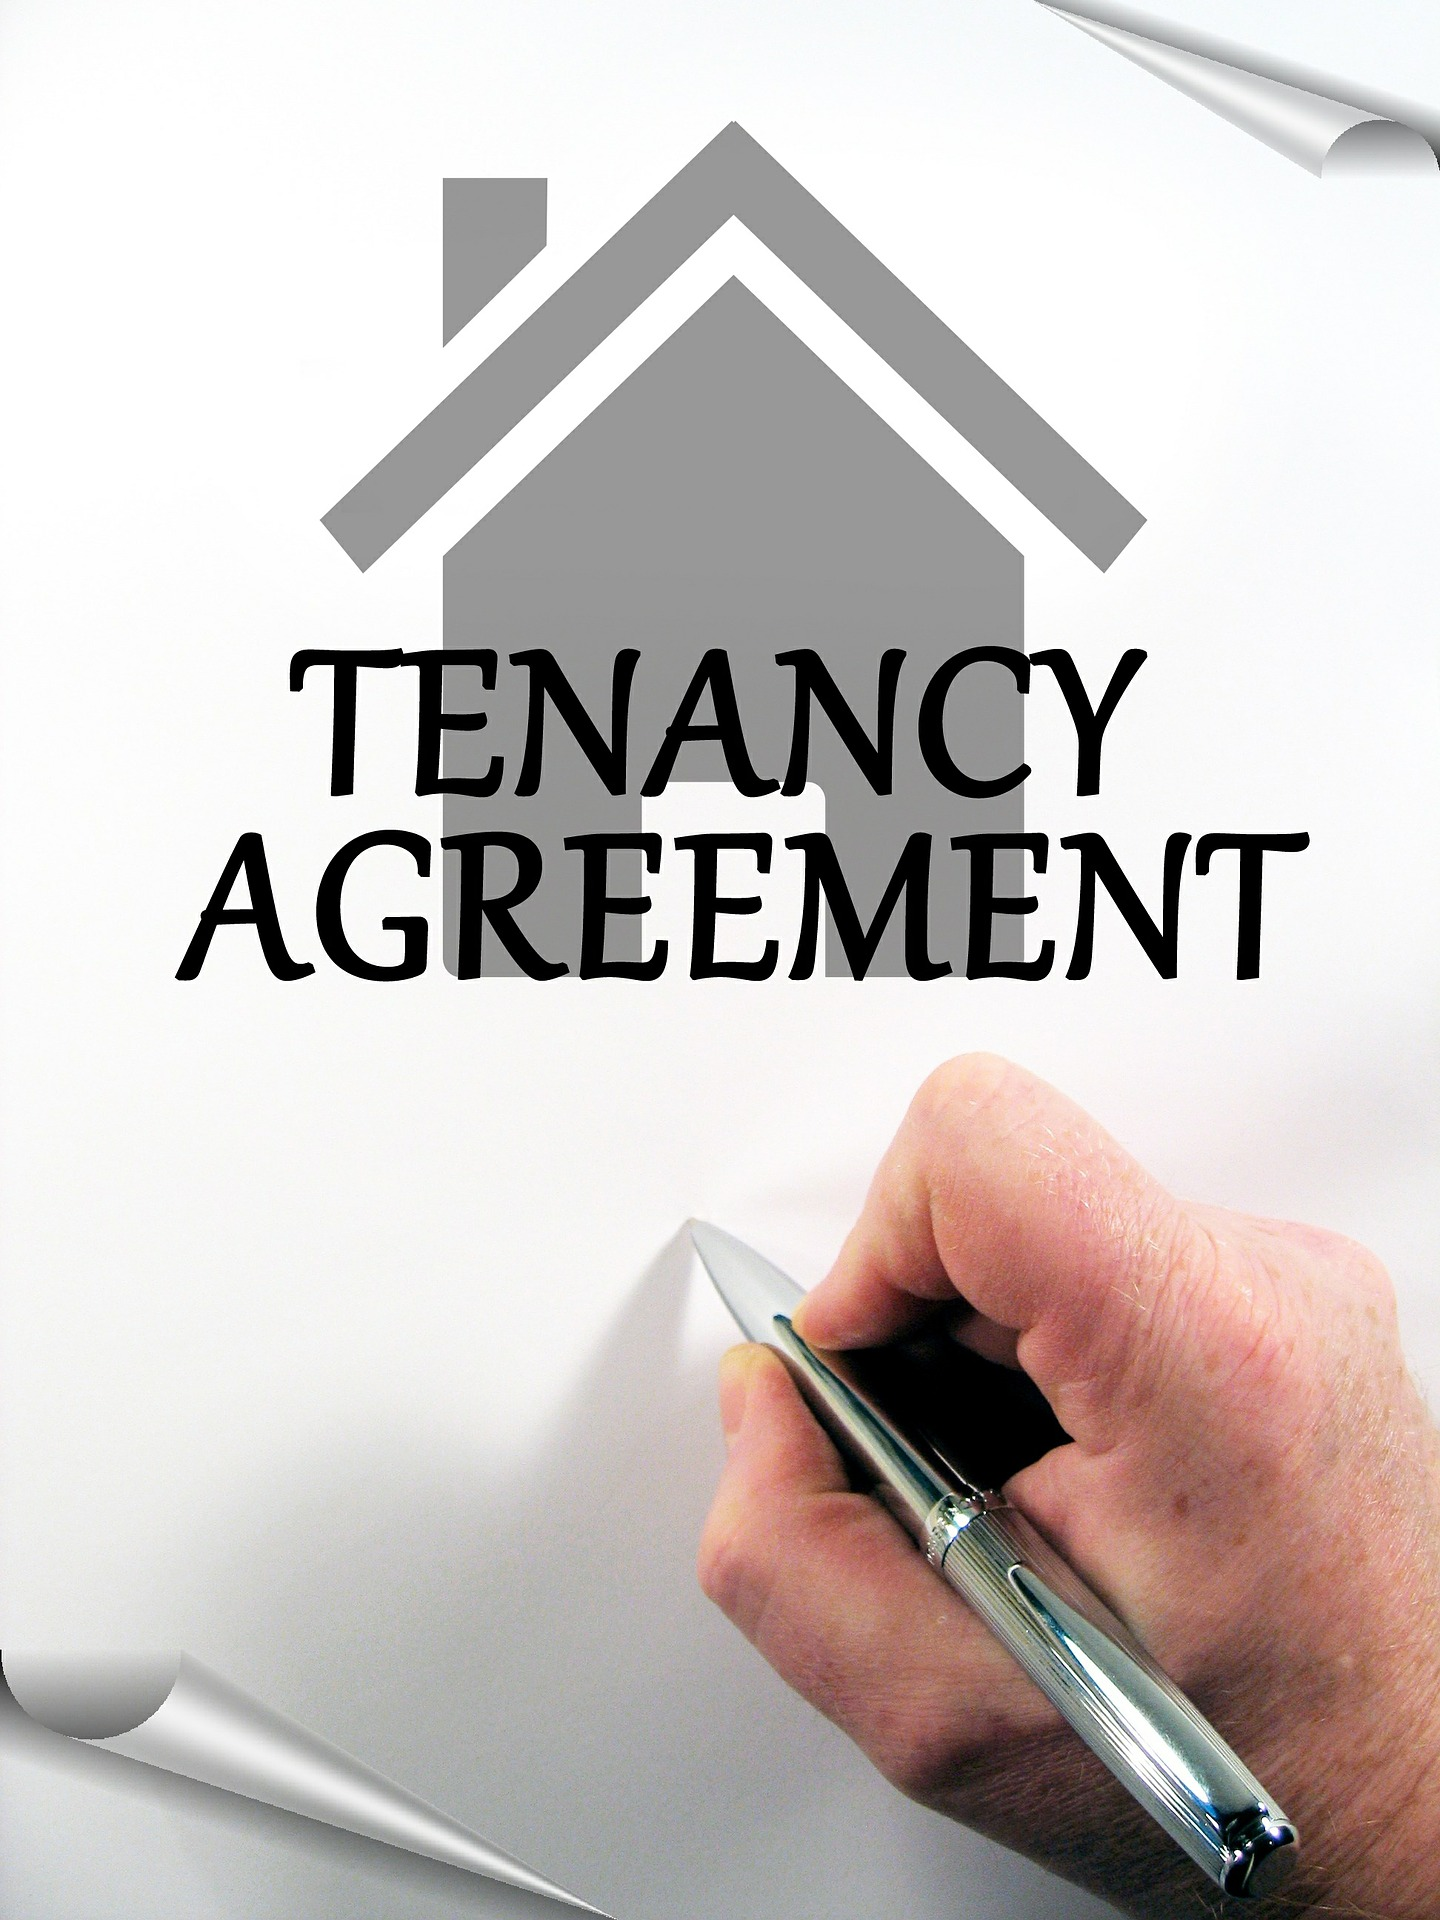 What Are the Responsibilities of Landlords in Ireland